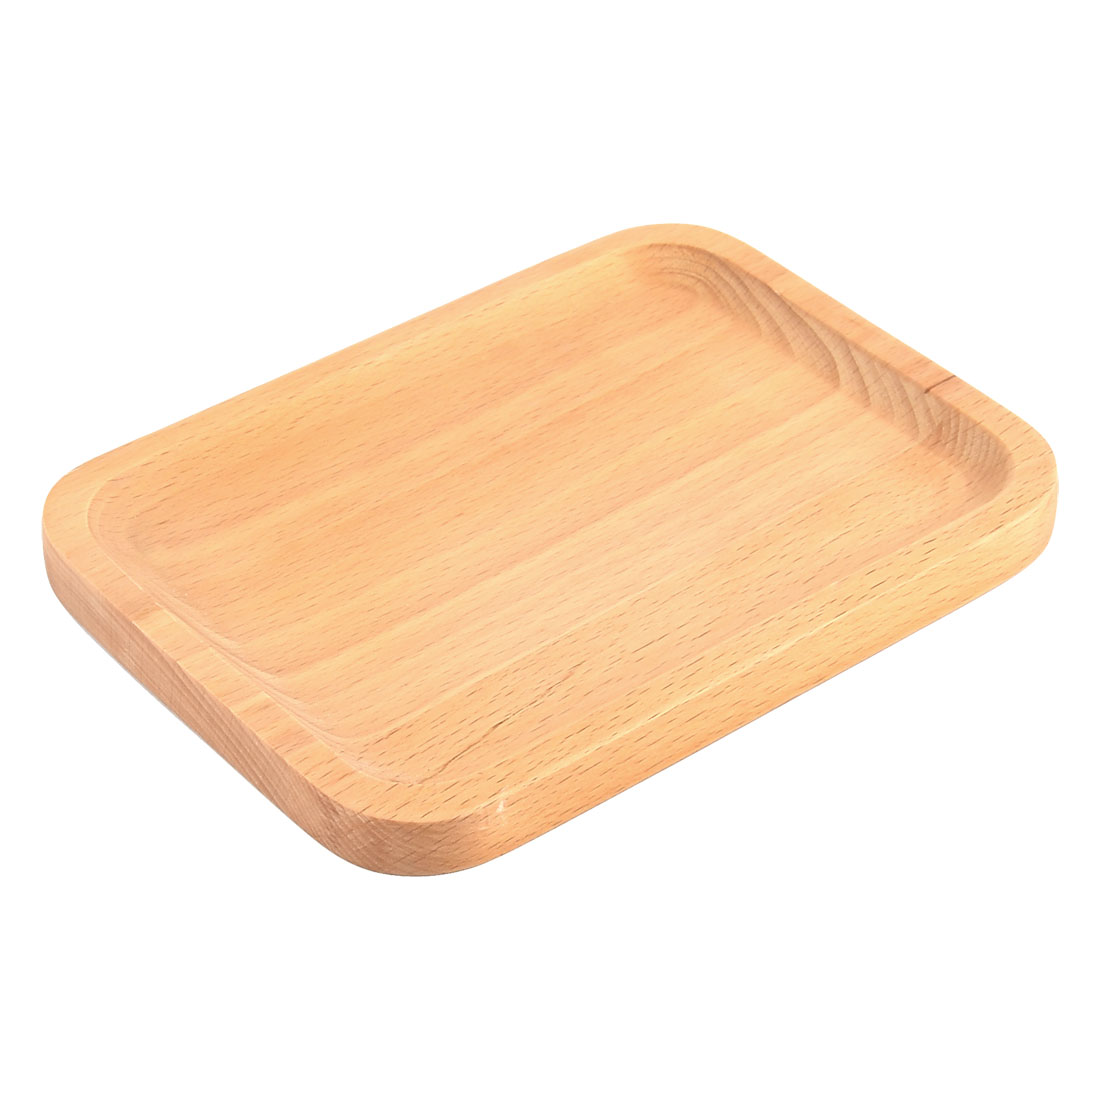 Restaurant Wood Grain Pattern Rectangle Shape Coffee Tea Tray Container